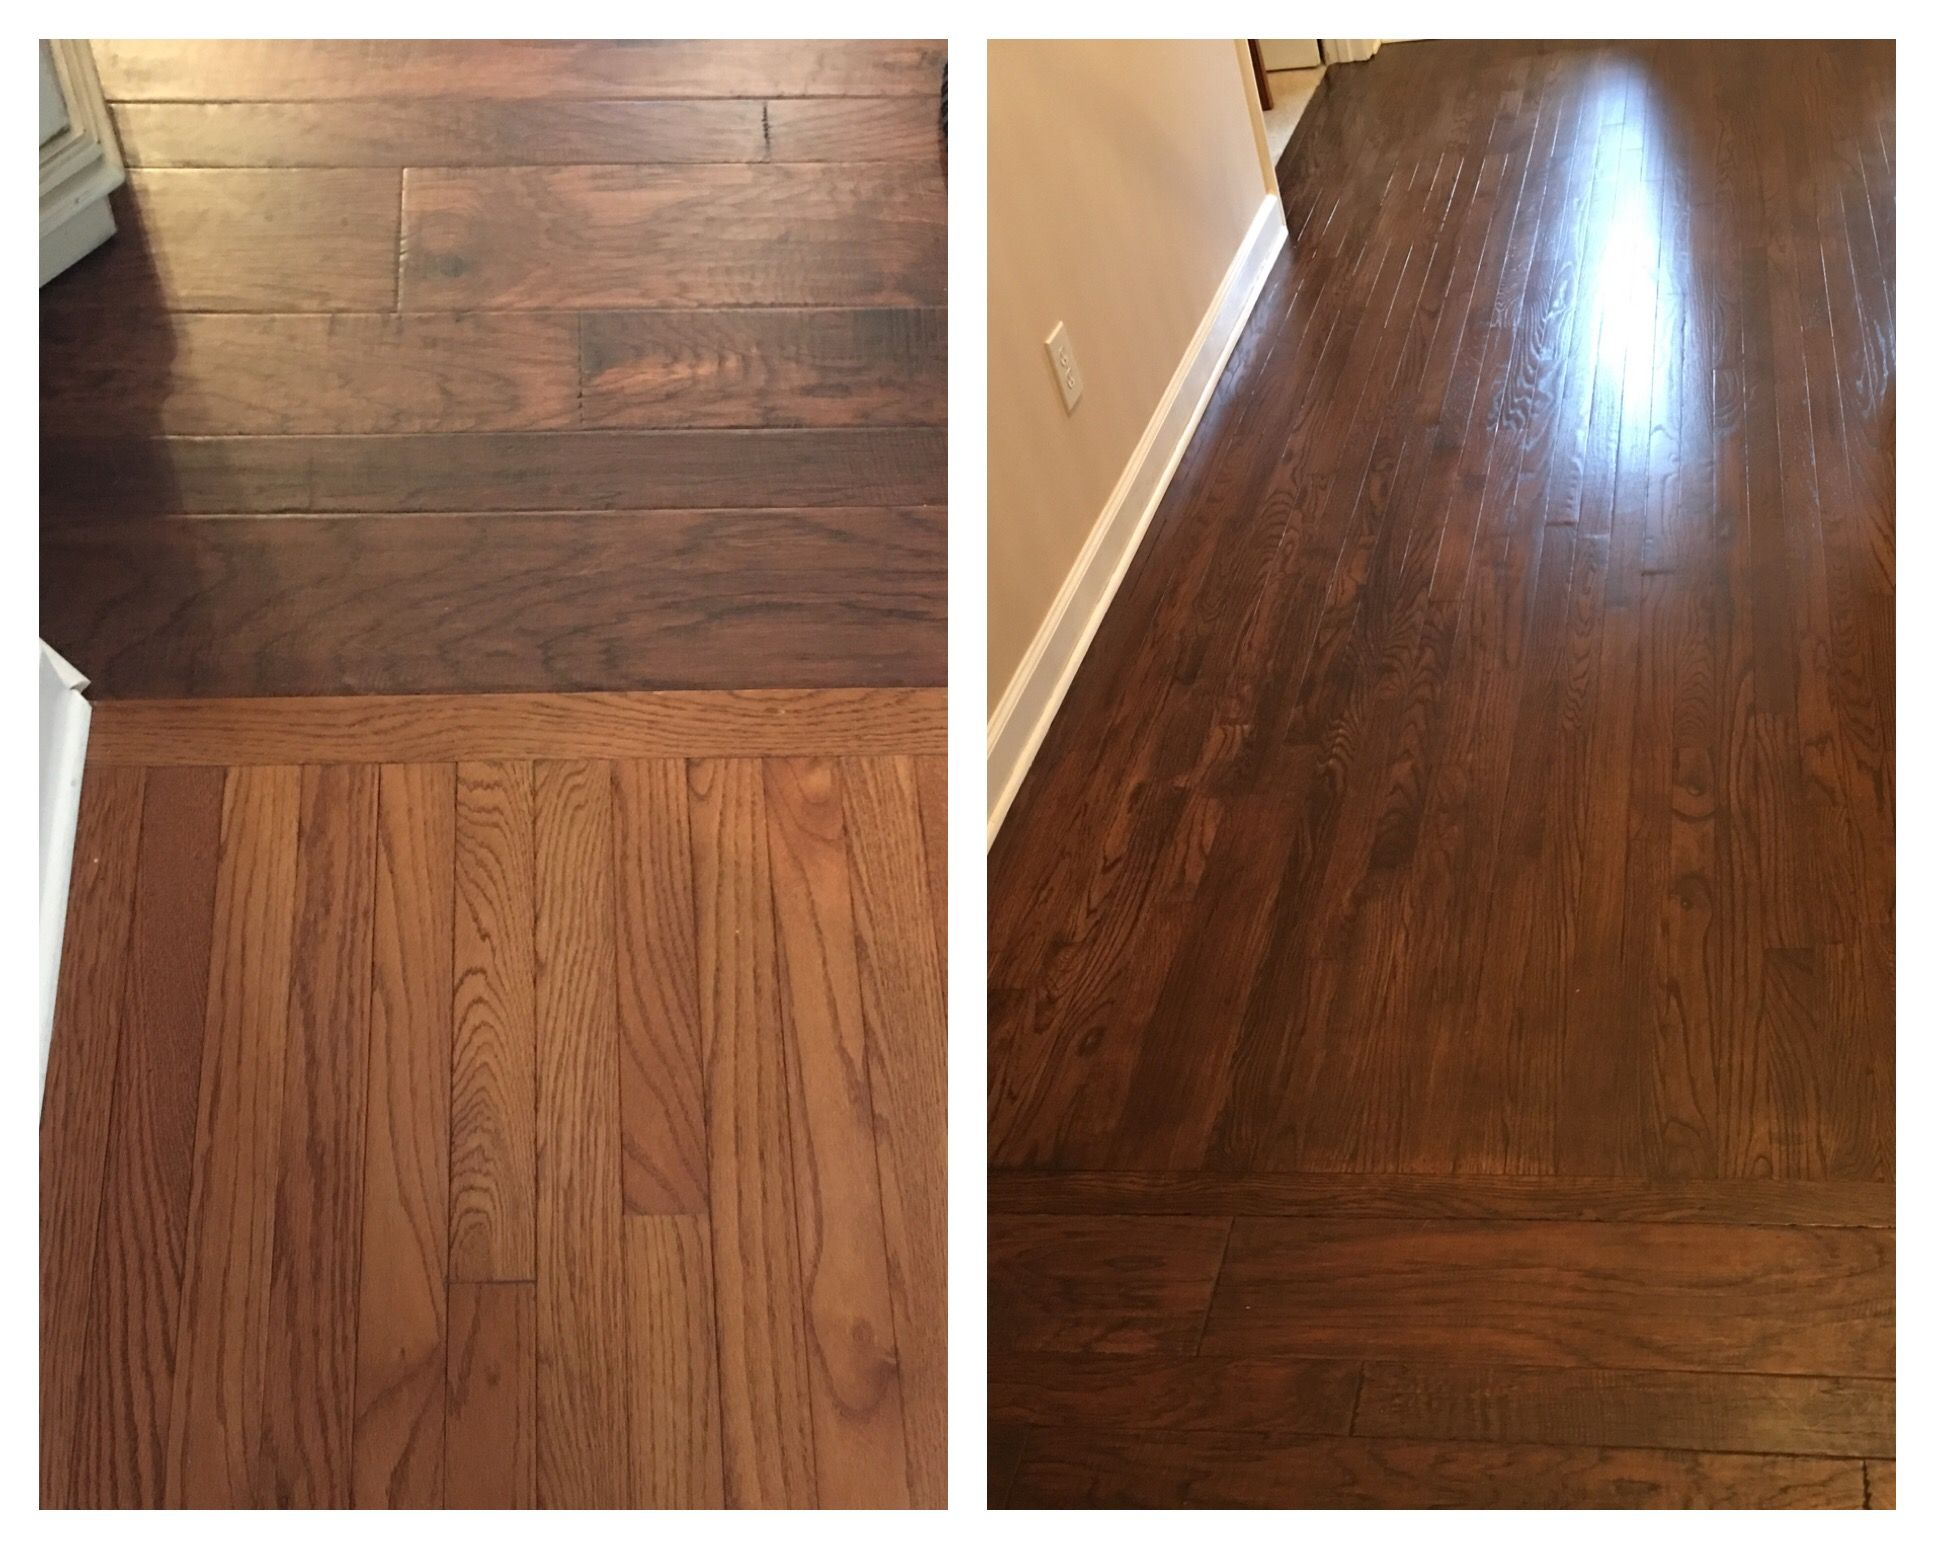 Rustoleum Driftwood Stain Old Refinished To Match New Kona Cognac Rustoleum Ultimate Wood